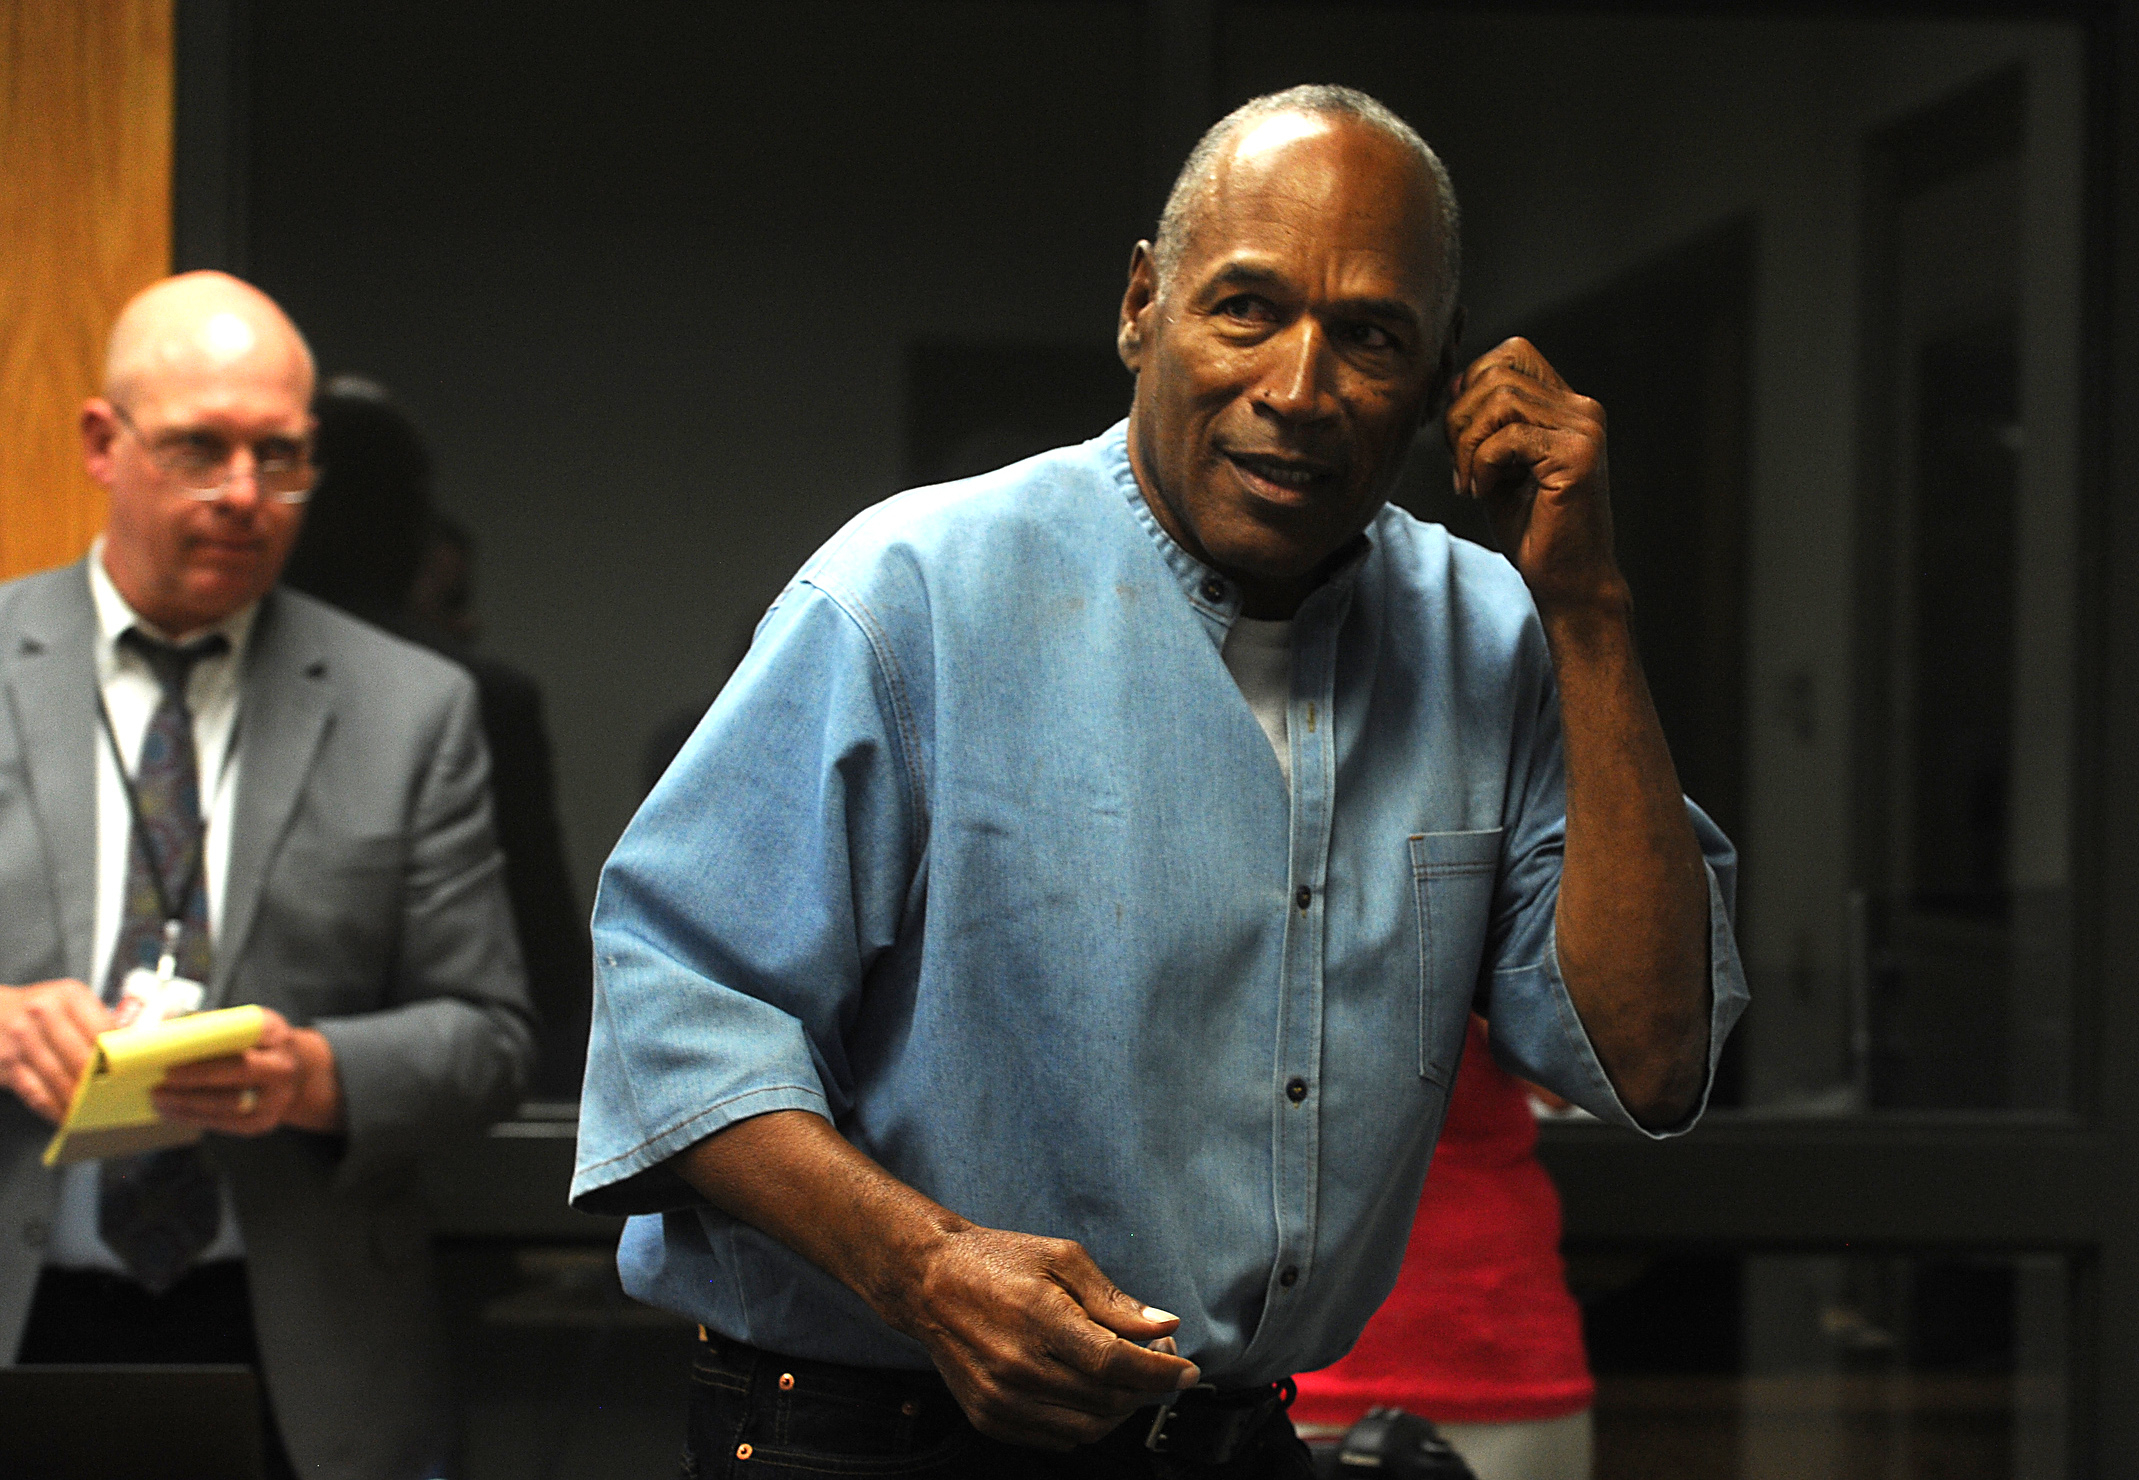 O J Simpson S Twitter Debut Spawns Memes And Parodies I Ve Got A Little Getting Even To Do